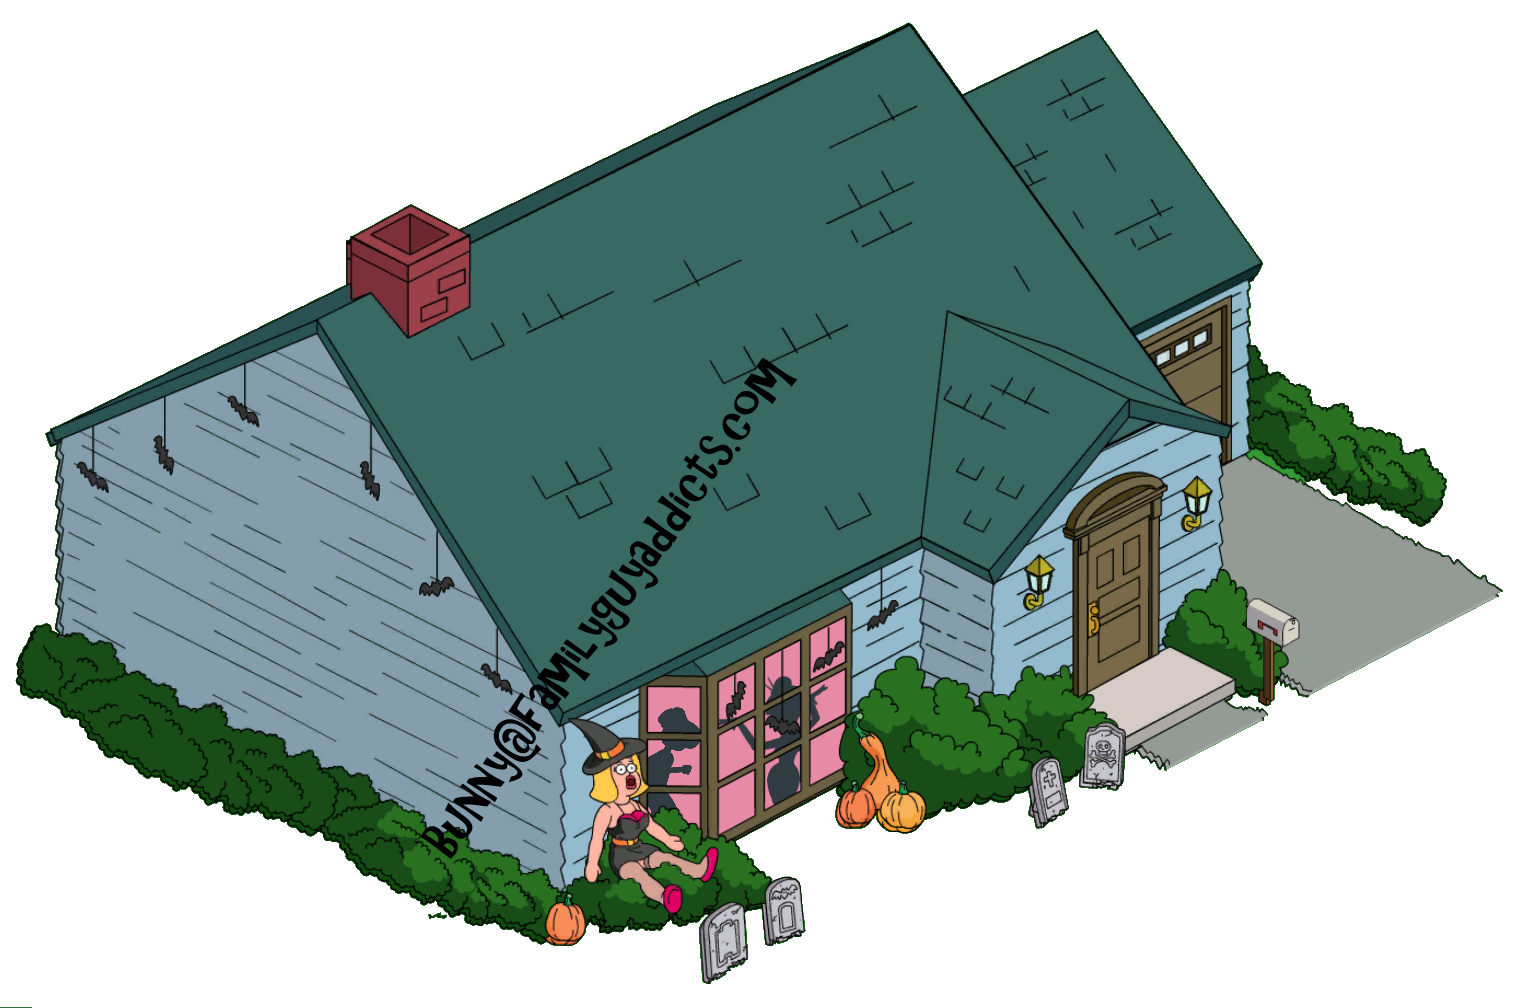 Halloween lawn decorations - Quagmire s house halloween decorations typical glenn blowup doll